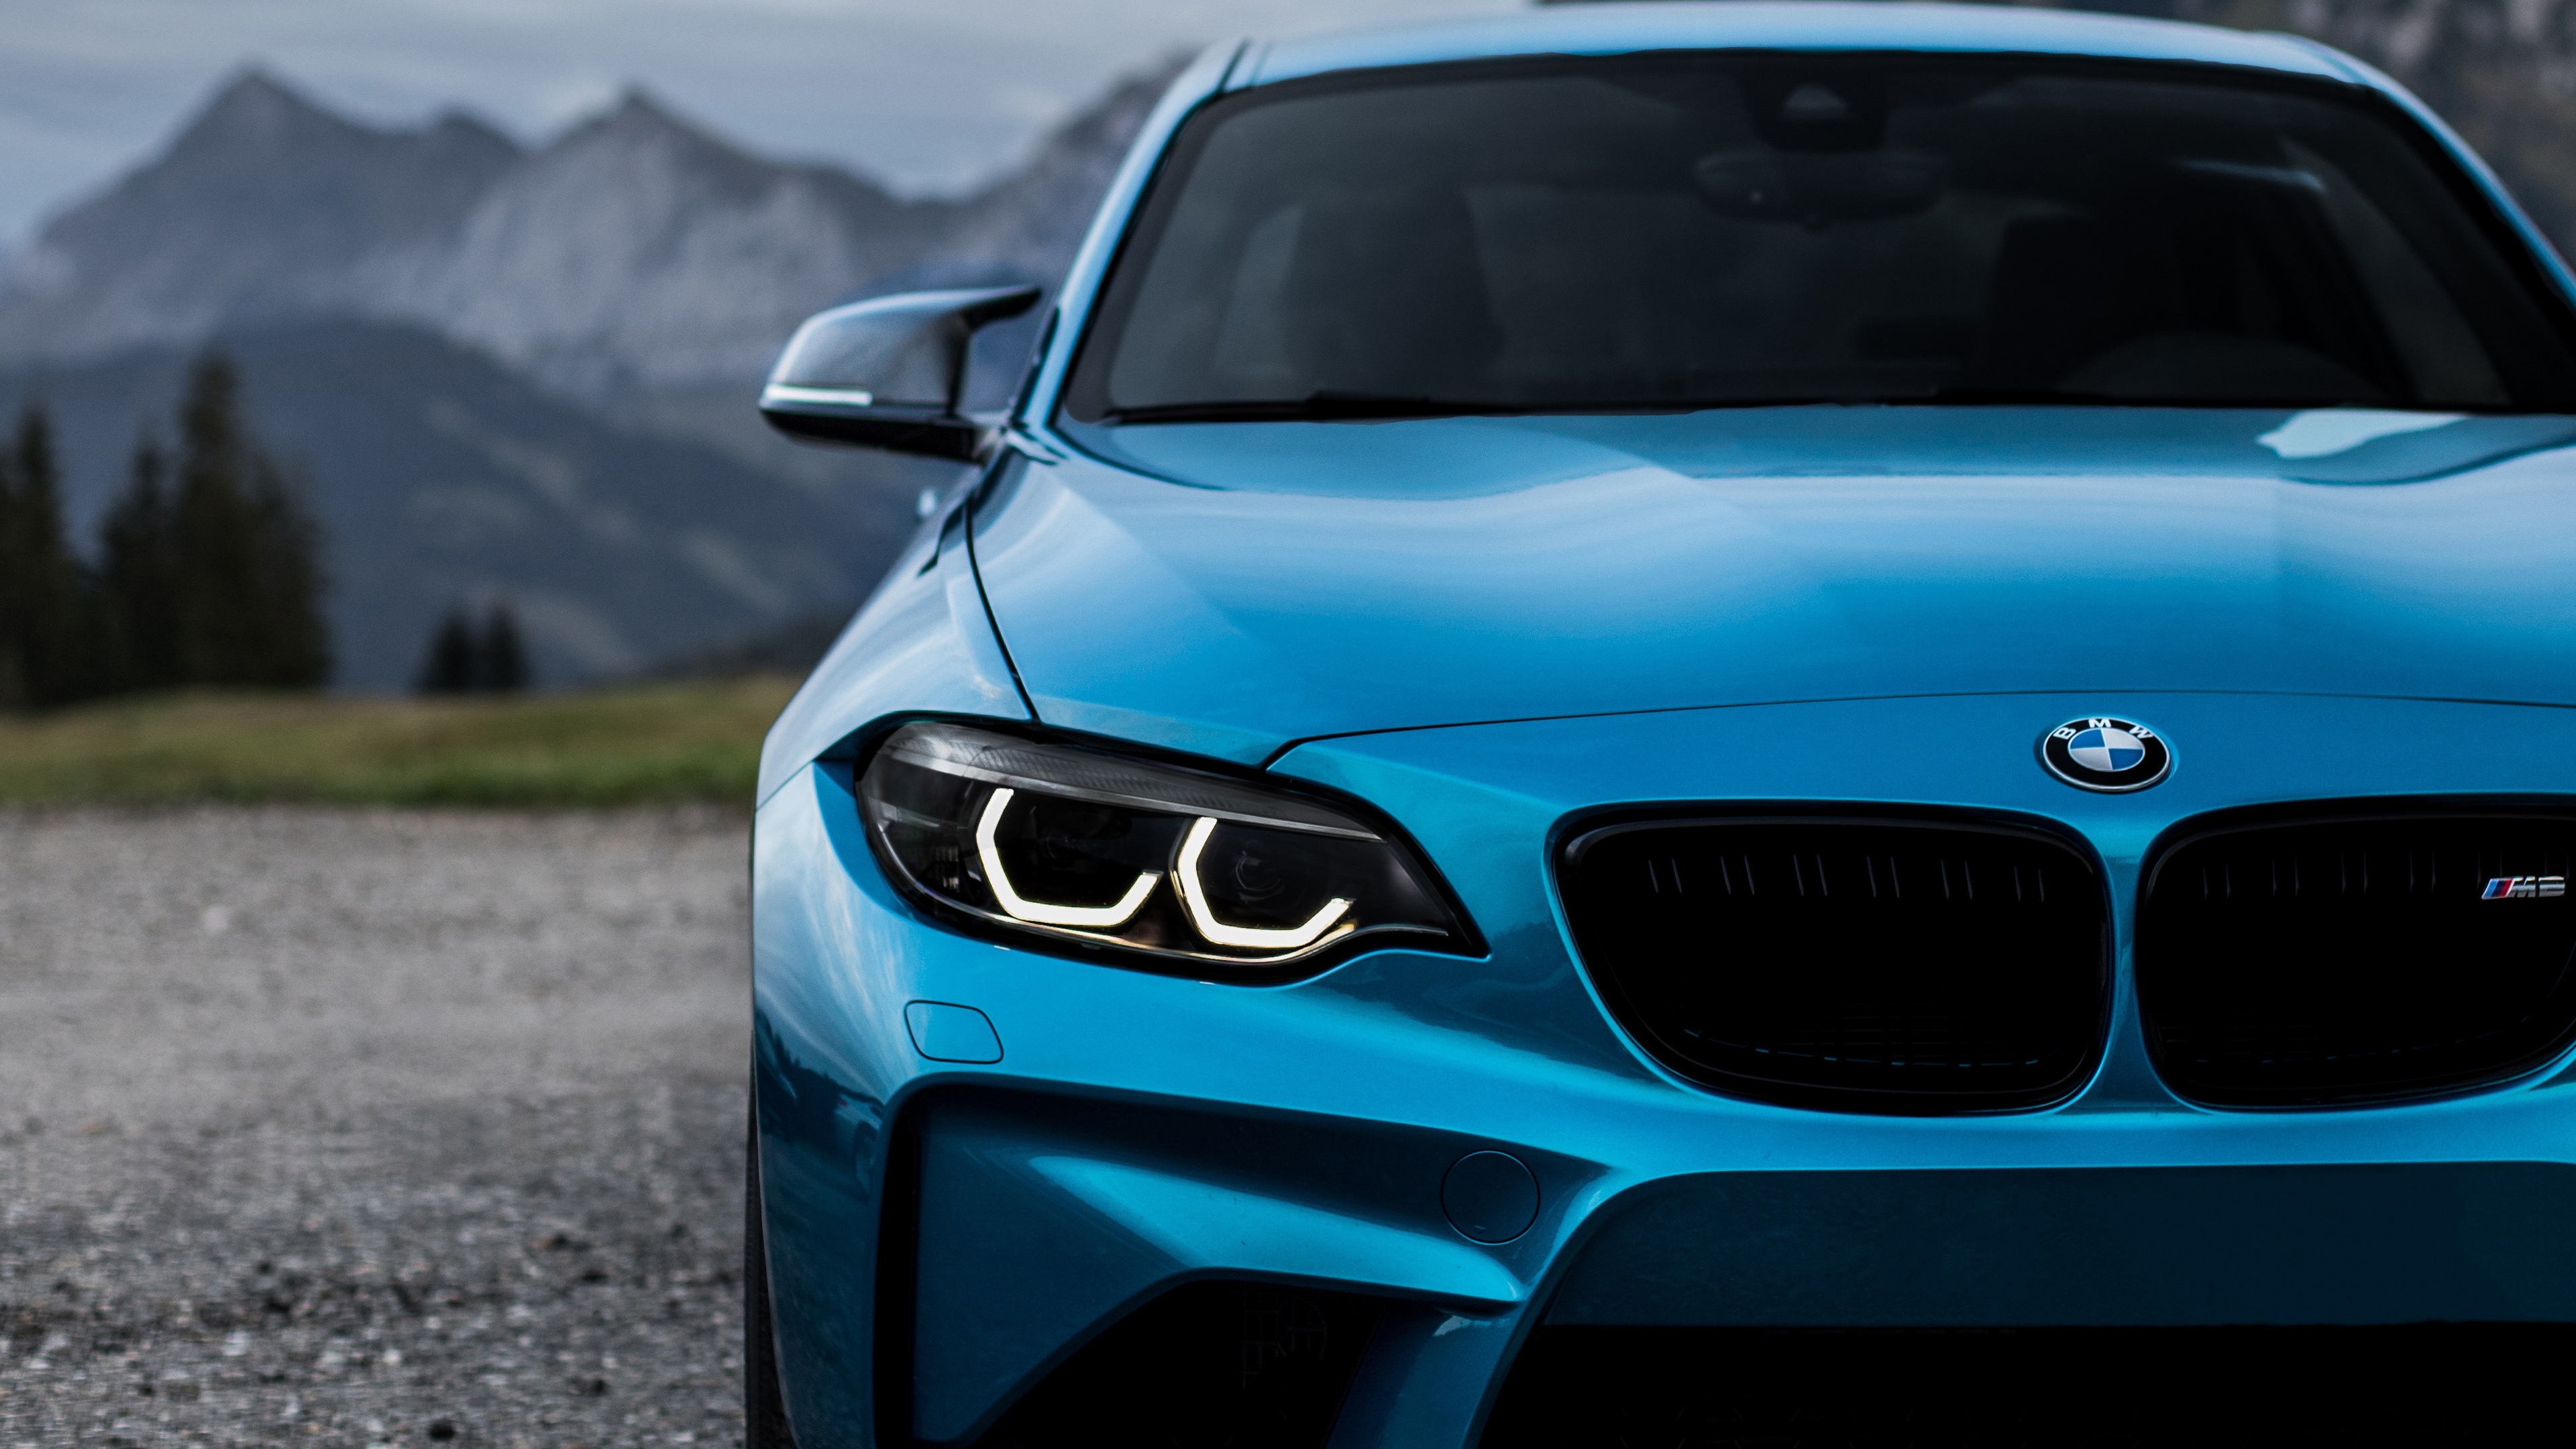 Bmw m2 lci 4k hd wallpapers cars wallpapers bmw - Wallpaper hd 4k car ...